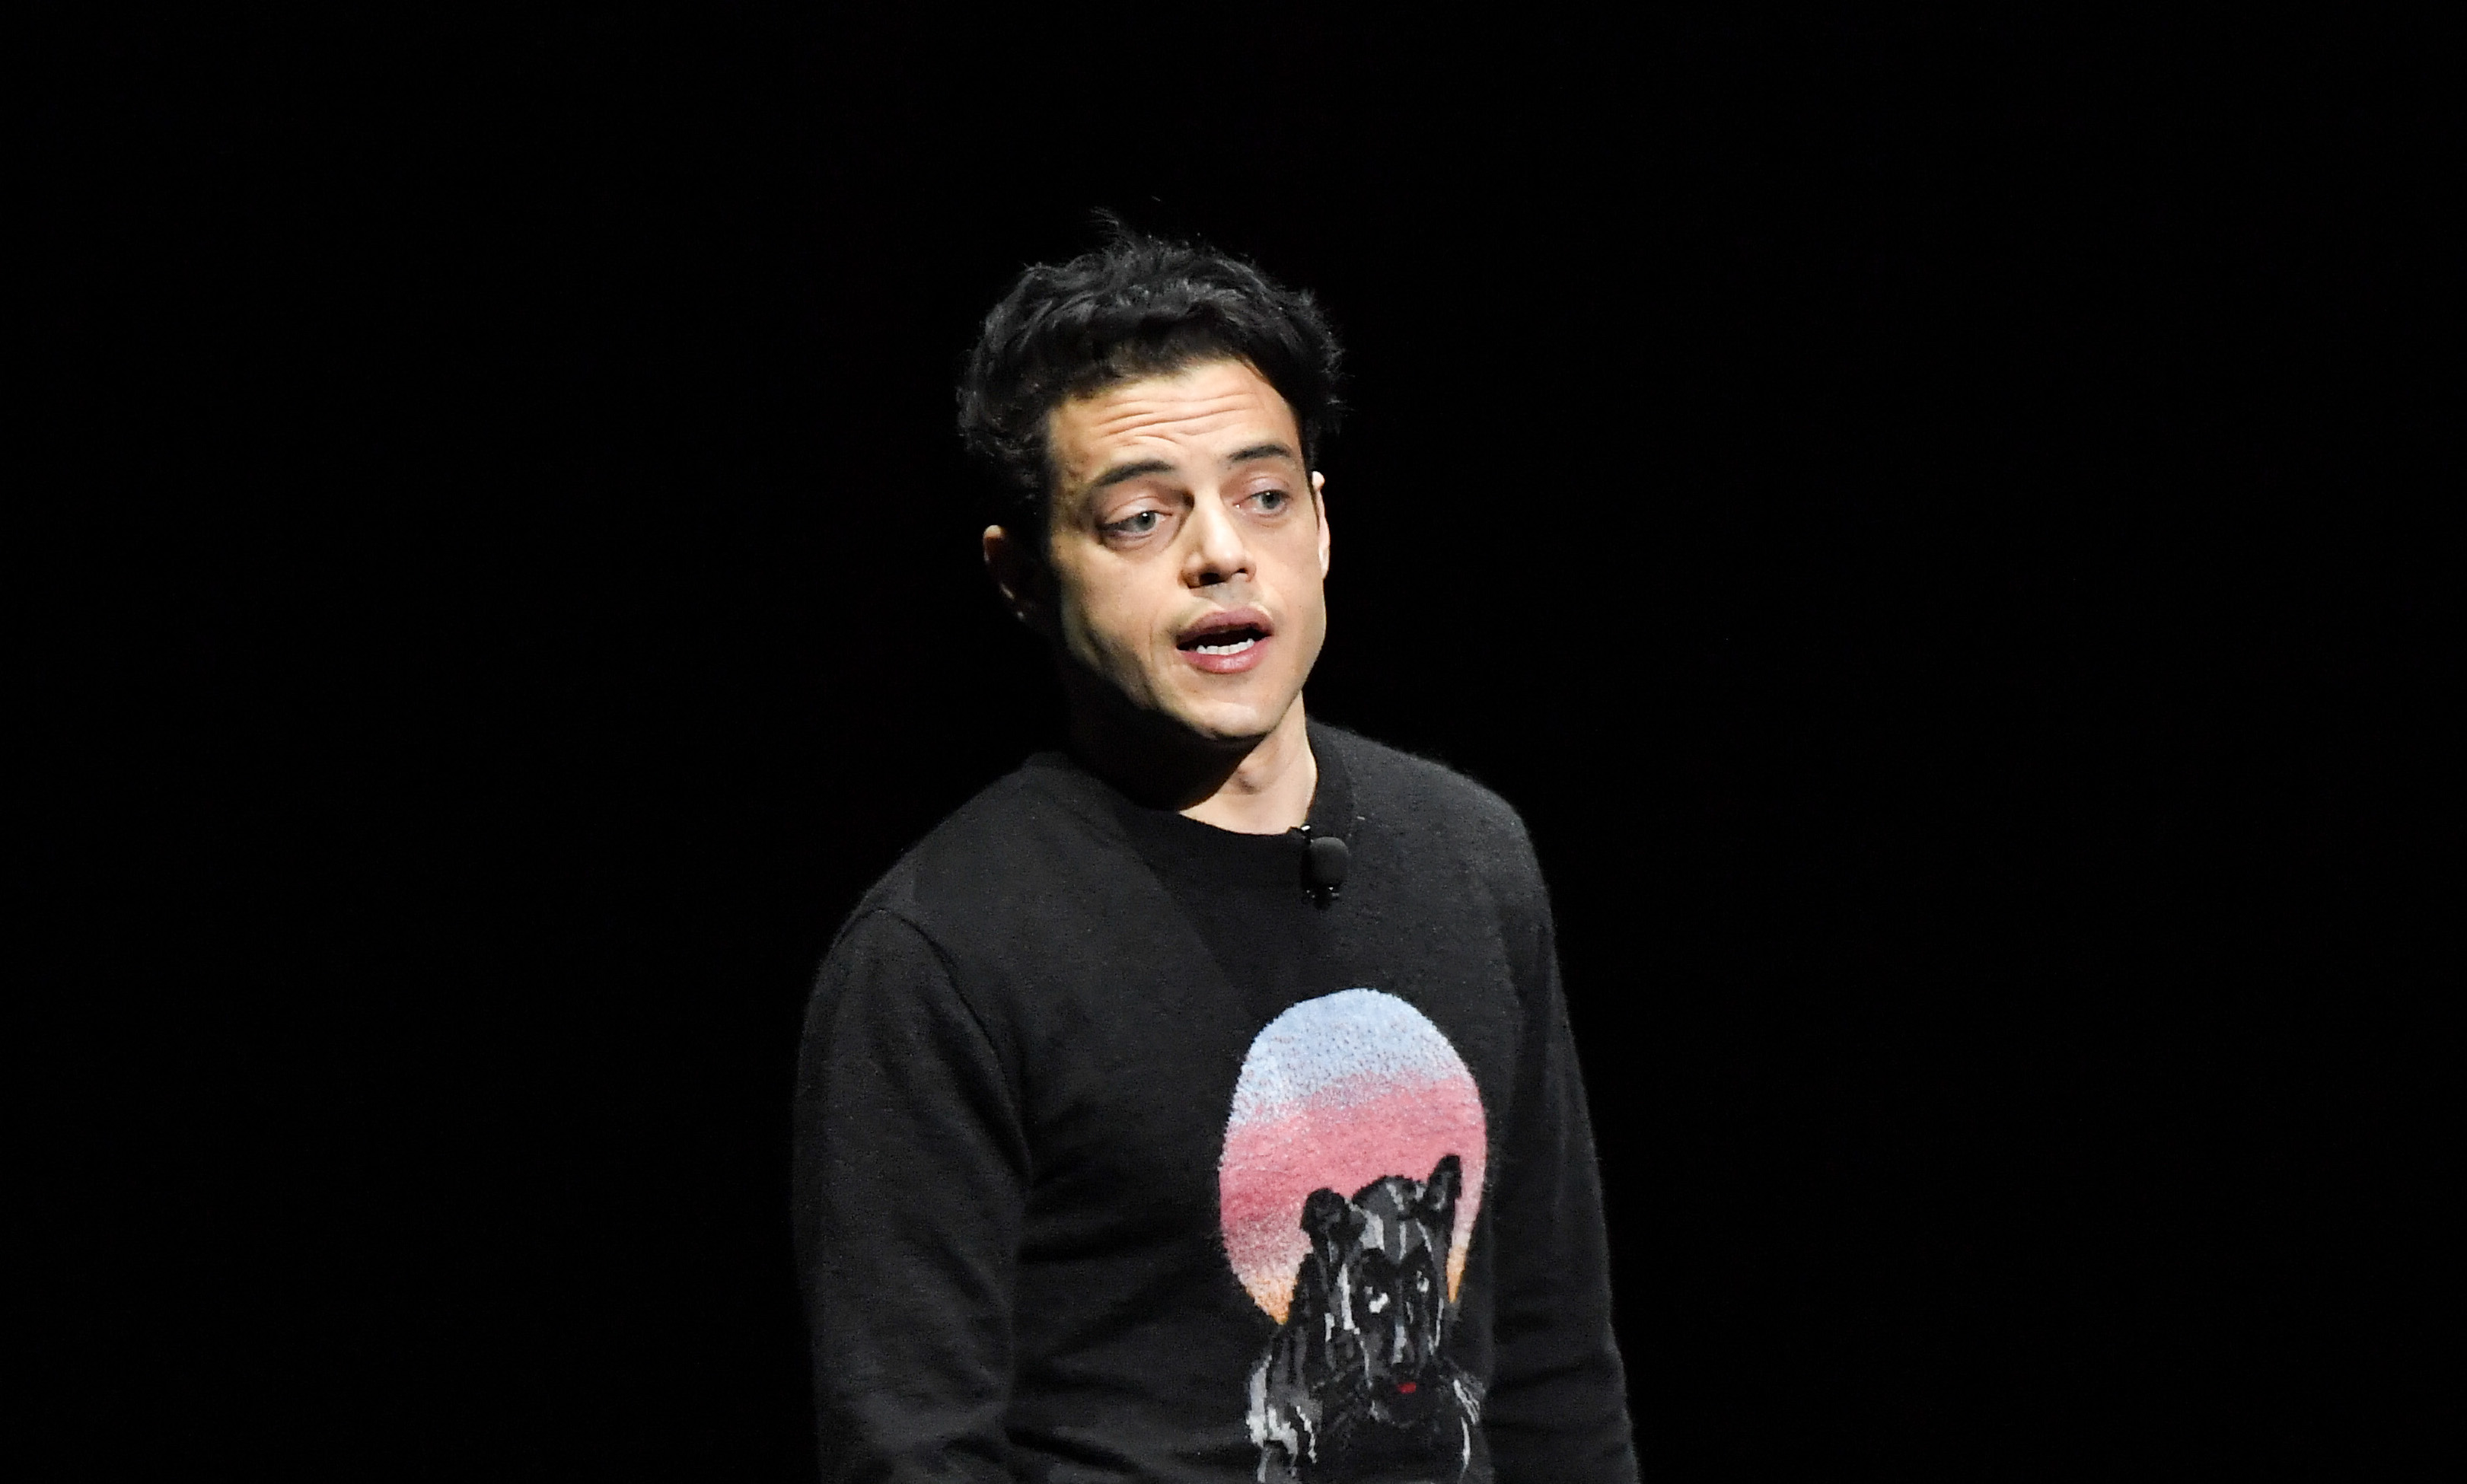 Rami Malek20th Century Fox presentation, CinemaCon, Las Vegas, USA - 26 Apr 2018